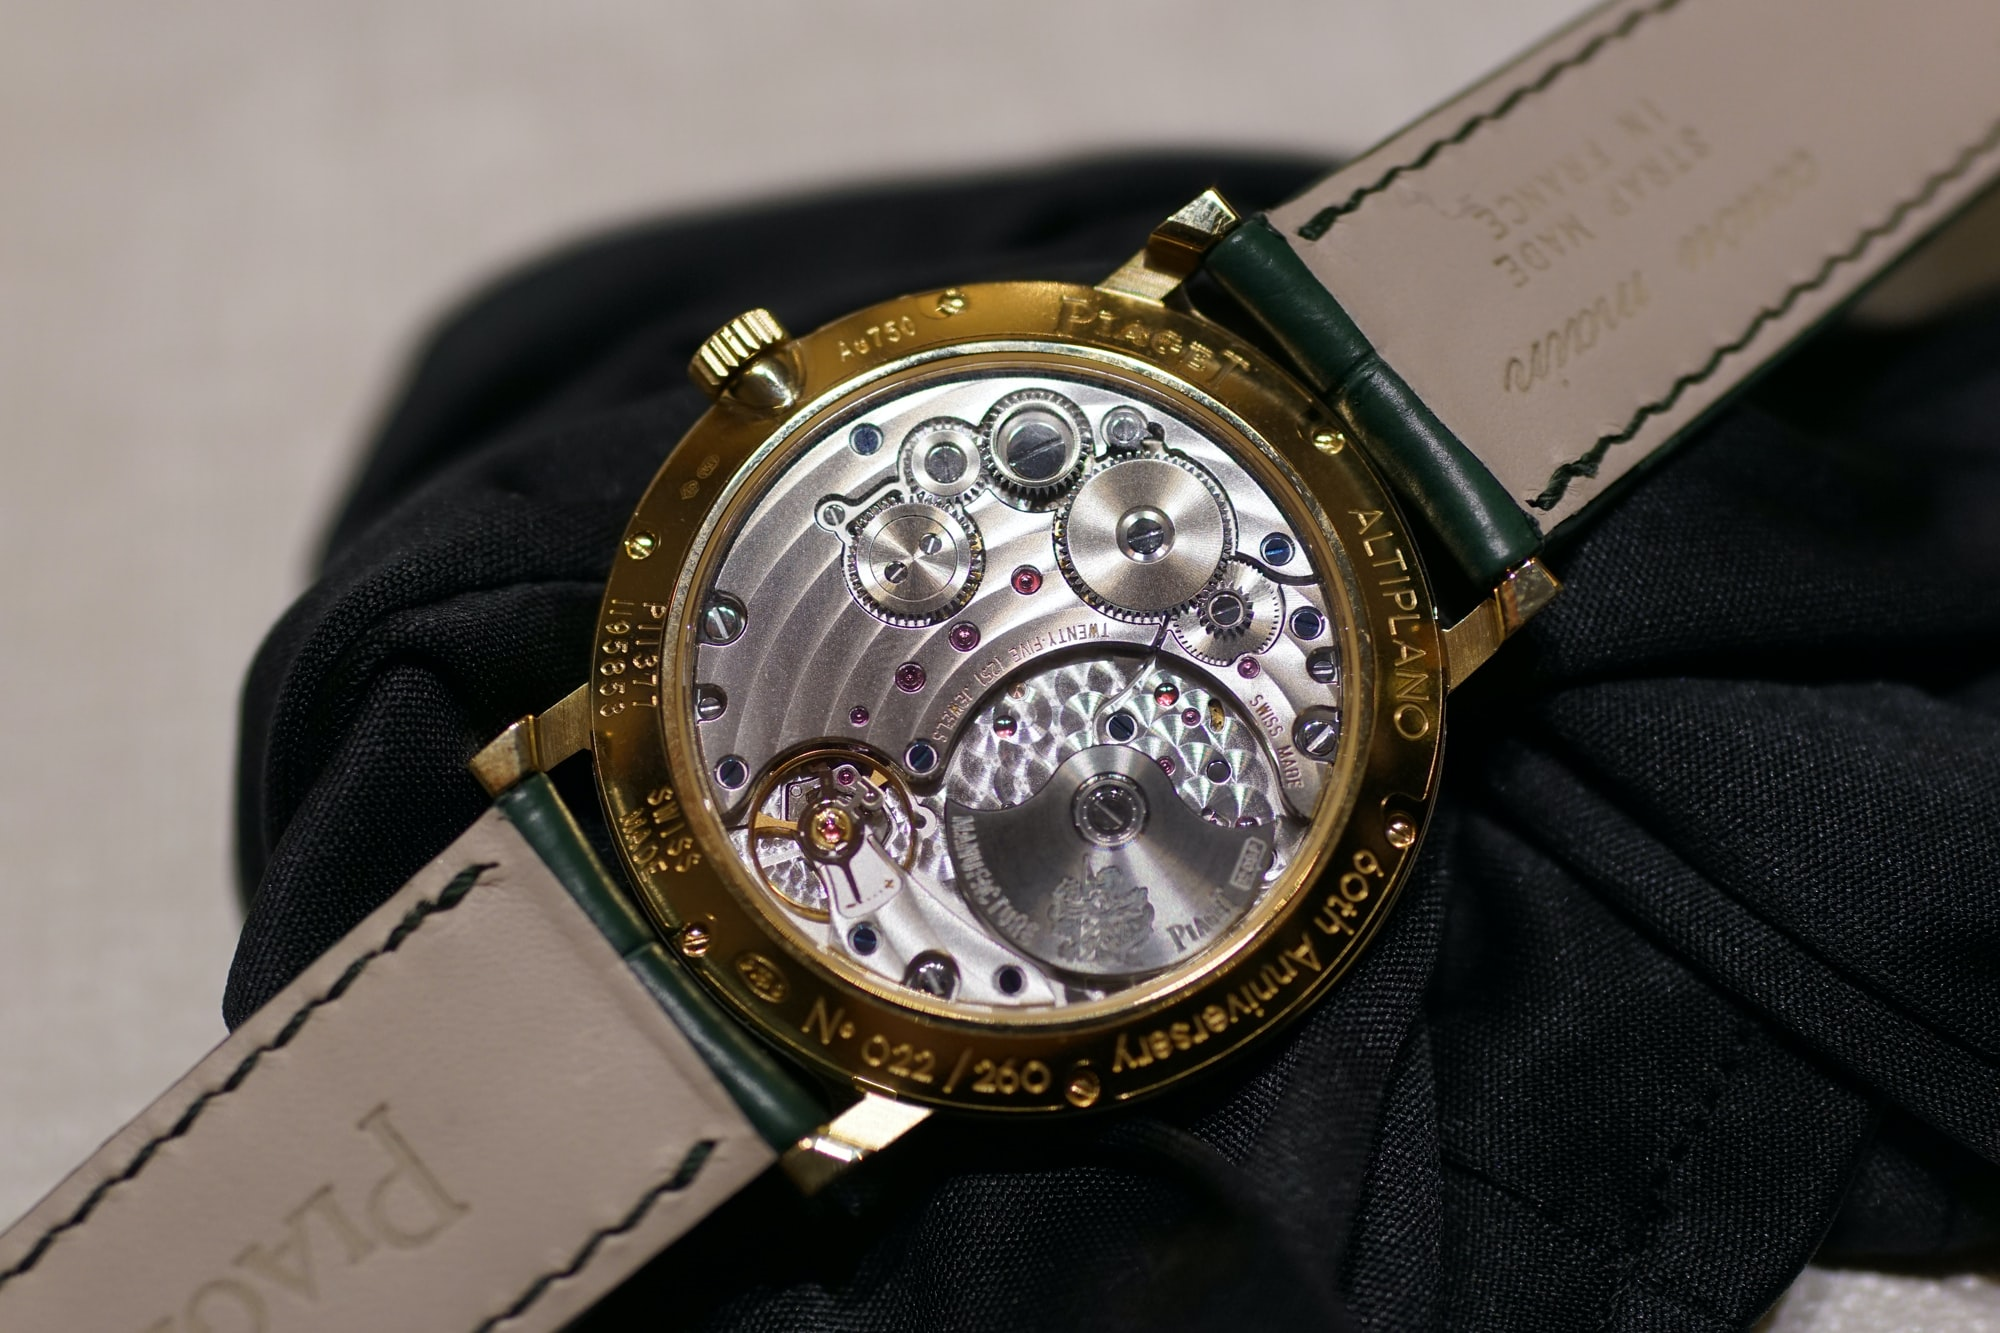 Piaget caliber 1203 Introducing: The Piaget Altiplano Automatic With Date, Going Back To The Roots Of Piaget (Live Pics + Pricing) Introducing: The Piaget Altiplano Automatic With Date, Going Back To The Roots Of Piaget (Live Pics + Pricing) piaget caliber